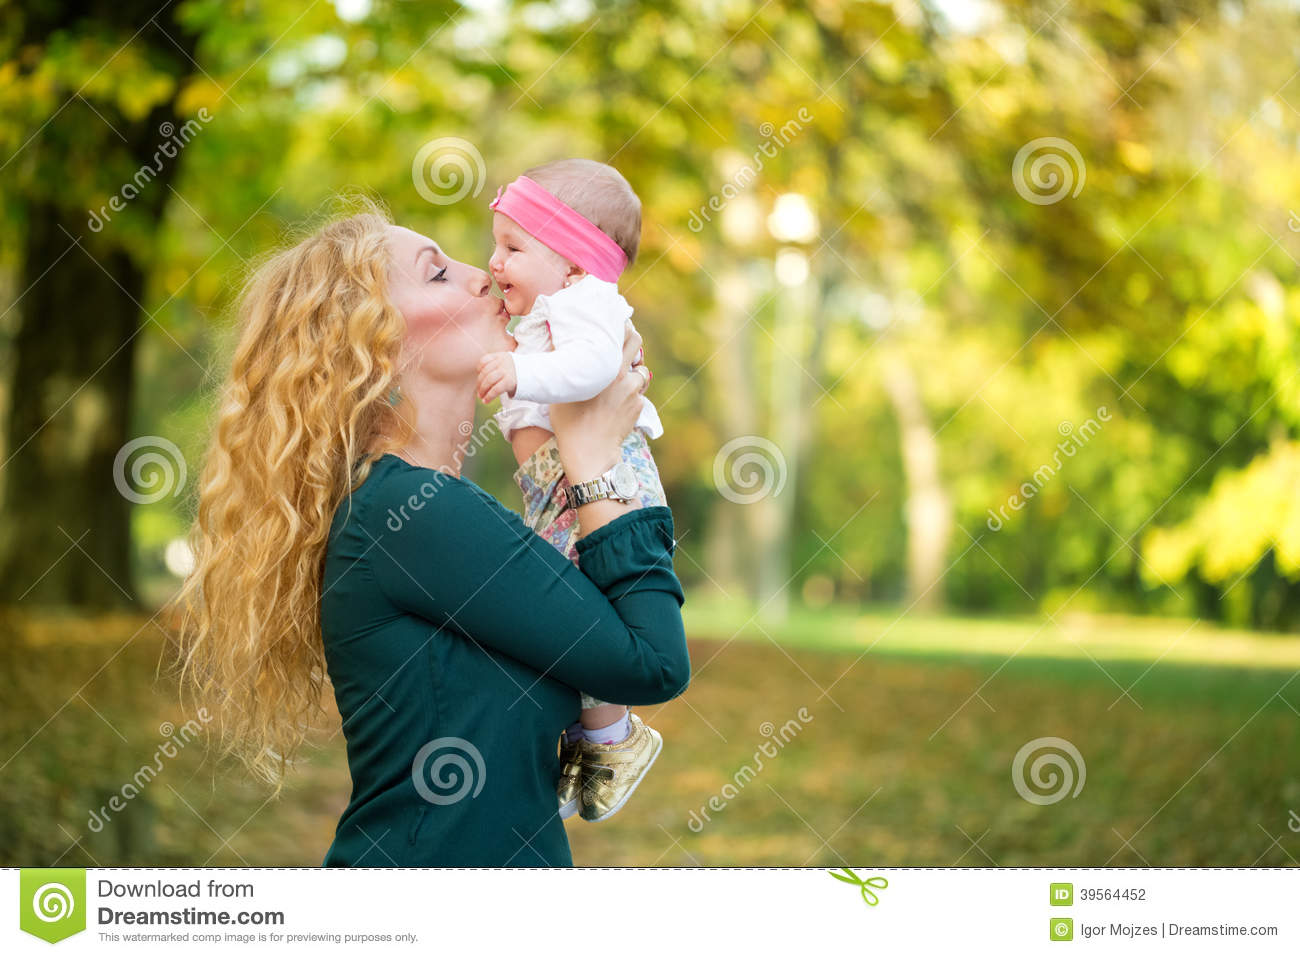 Mother and baby kissing in nature outdoor stock photo for Cheerful nature